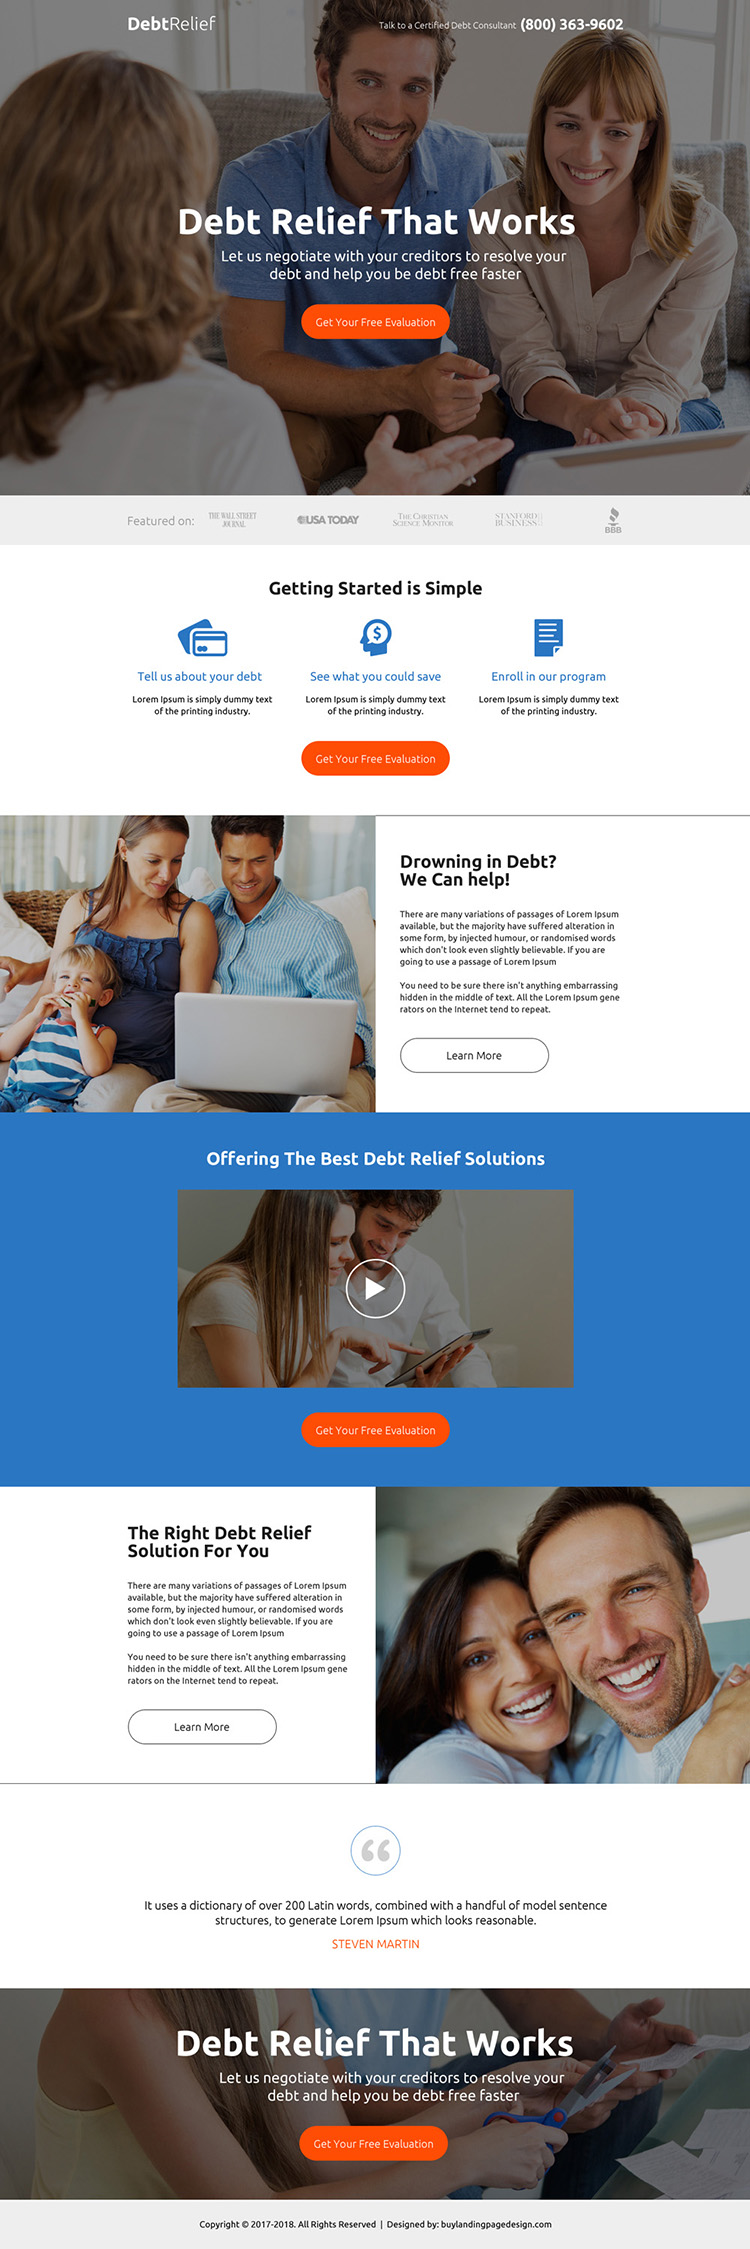 debt relief evaluation premium landing page design